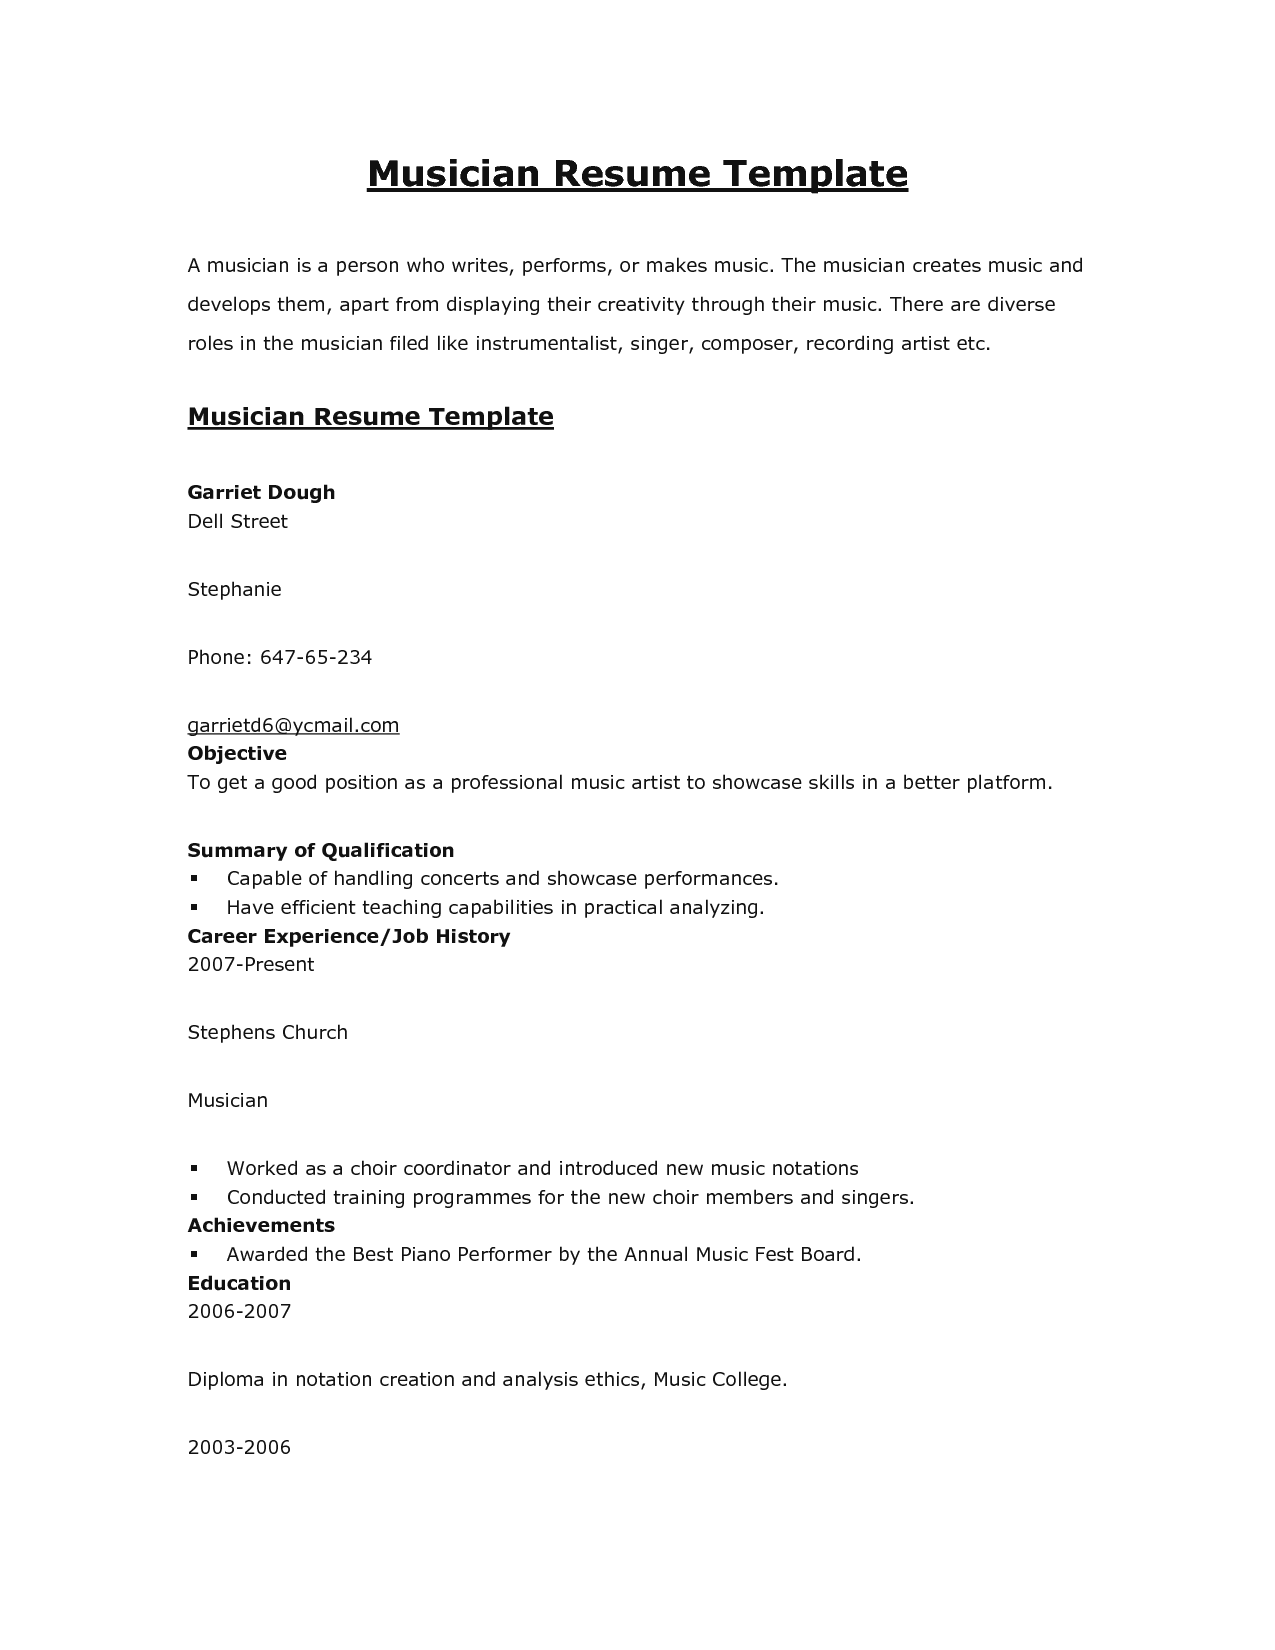 Musicians Resume Template Keithhawley Resume Templates Ideas